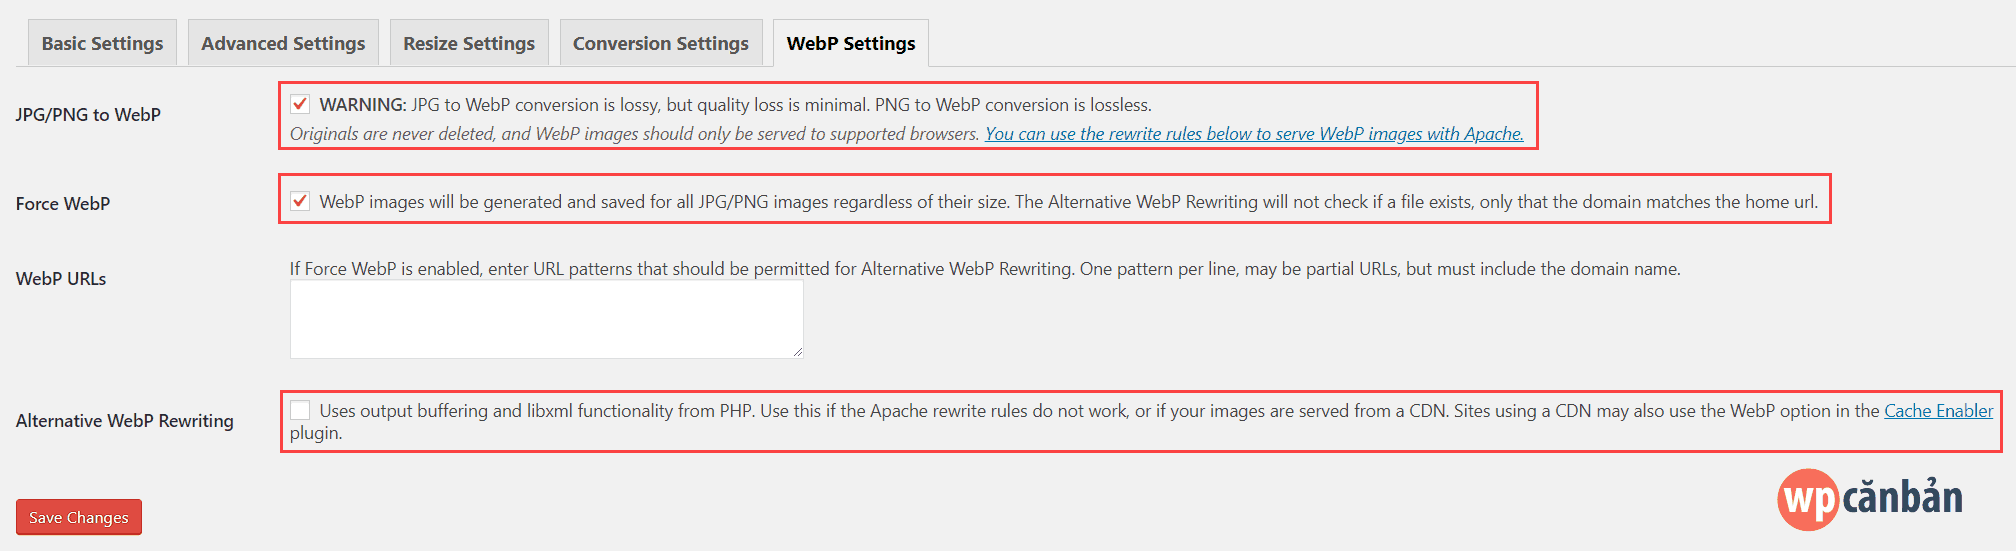 ewww-image-optimizer-webp-settings